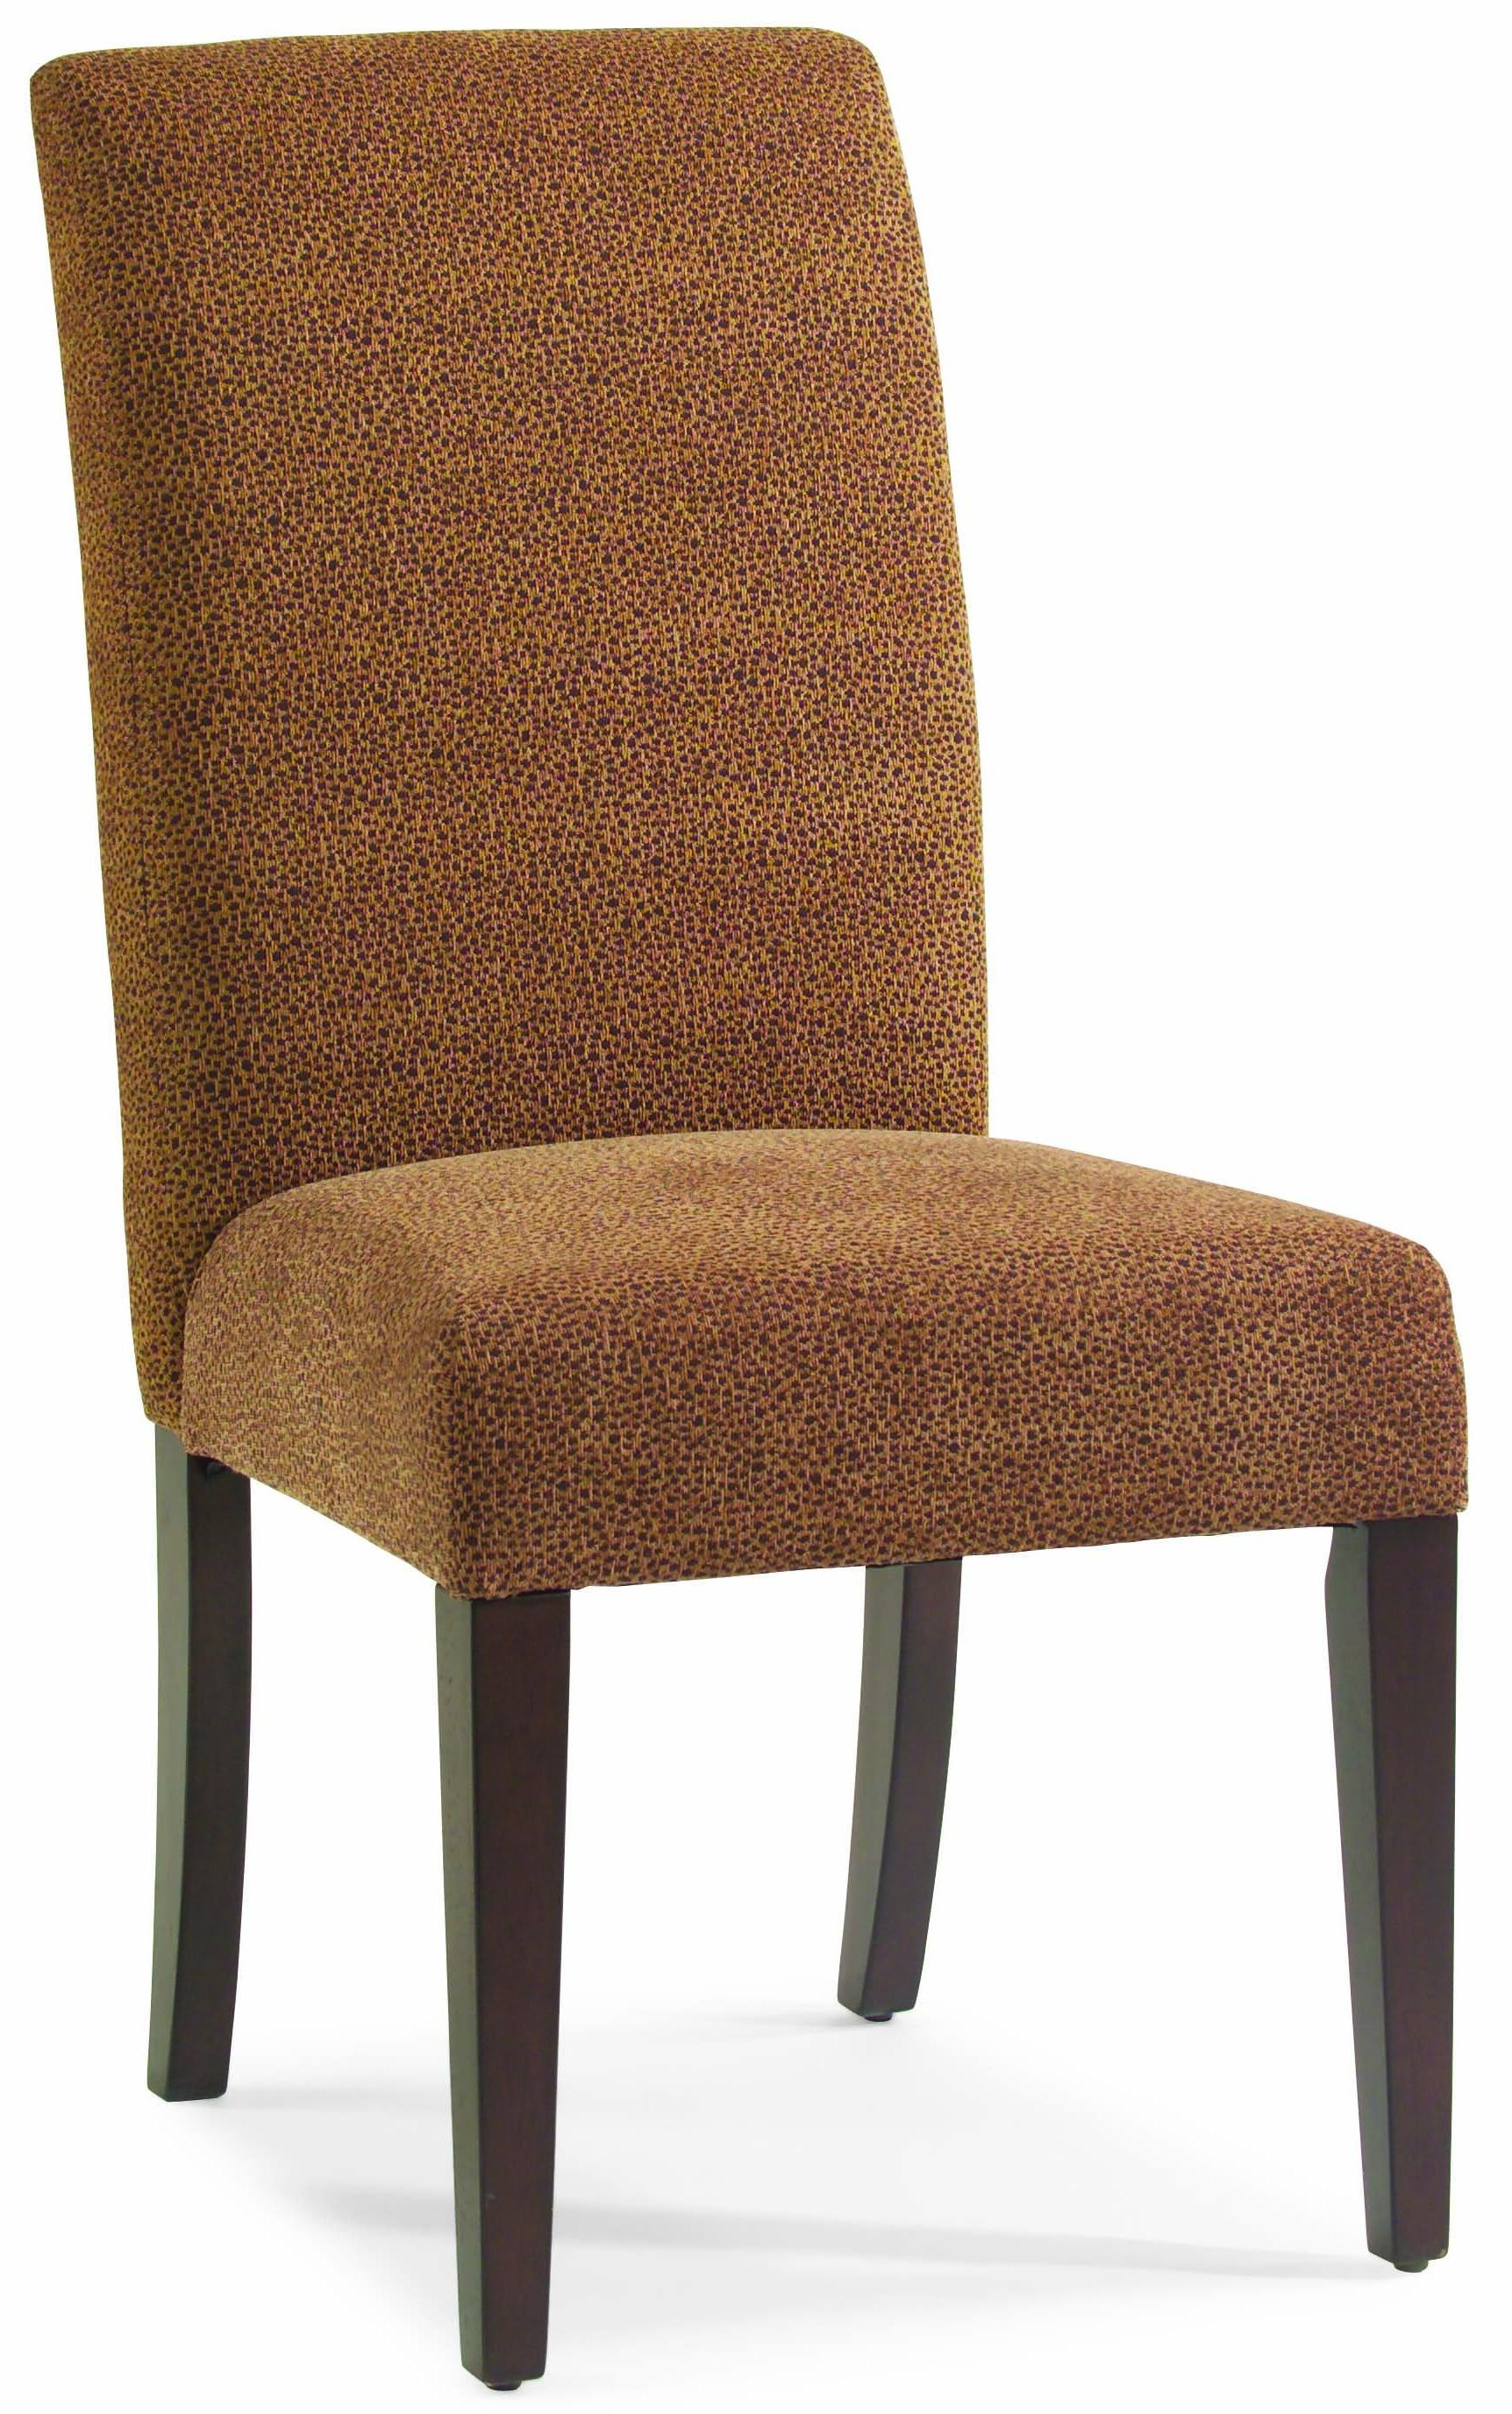 Hamilton Home Dining Chairs with Counter Stools and Bar Stools Stellene Side Chair - Item Number: 200-36-002